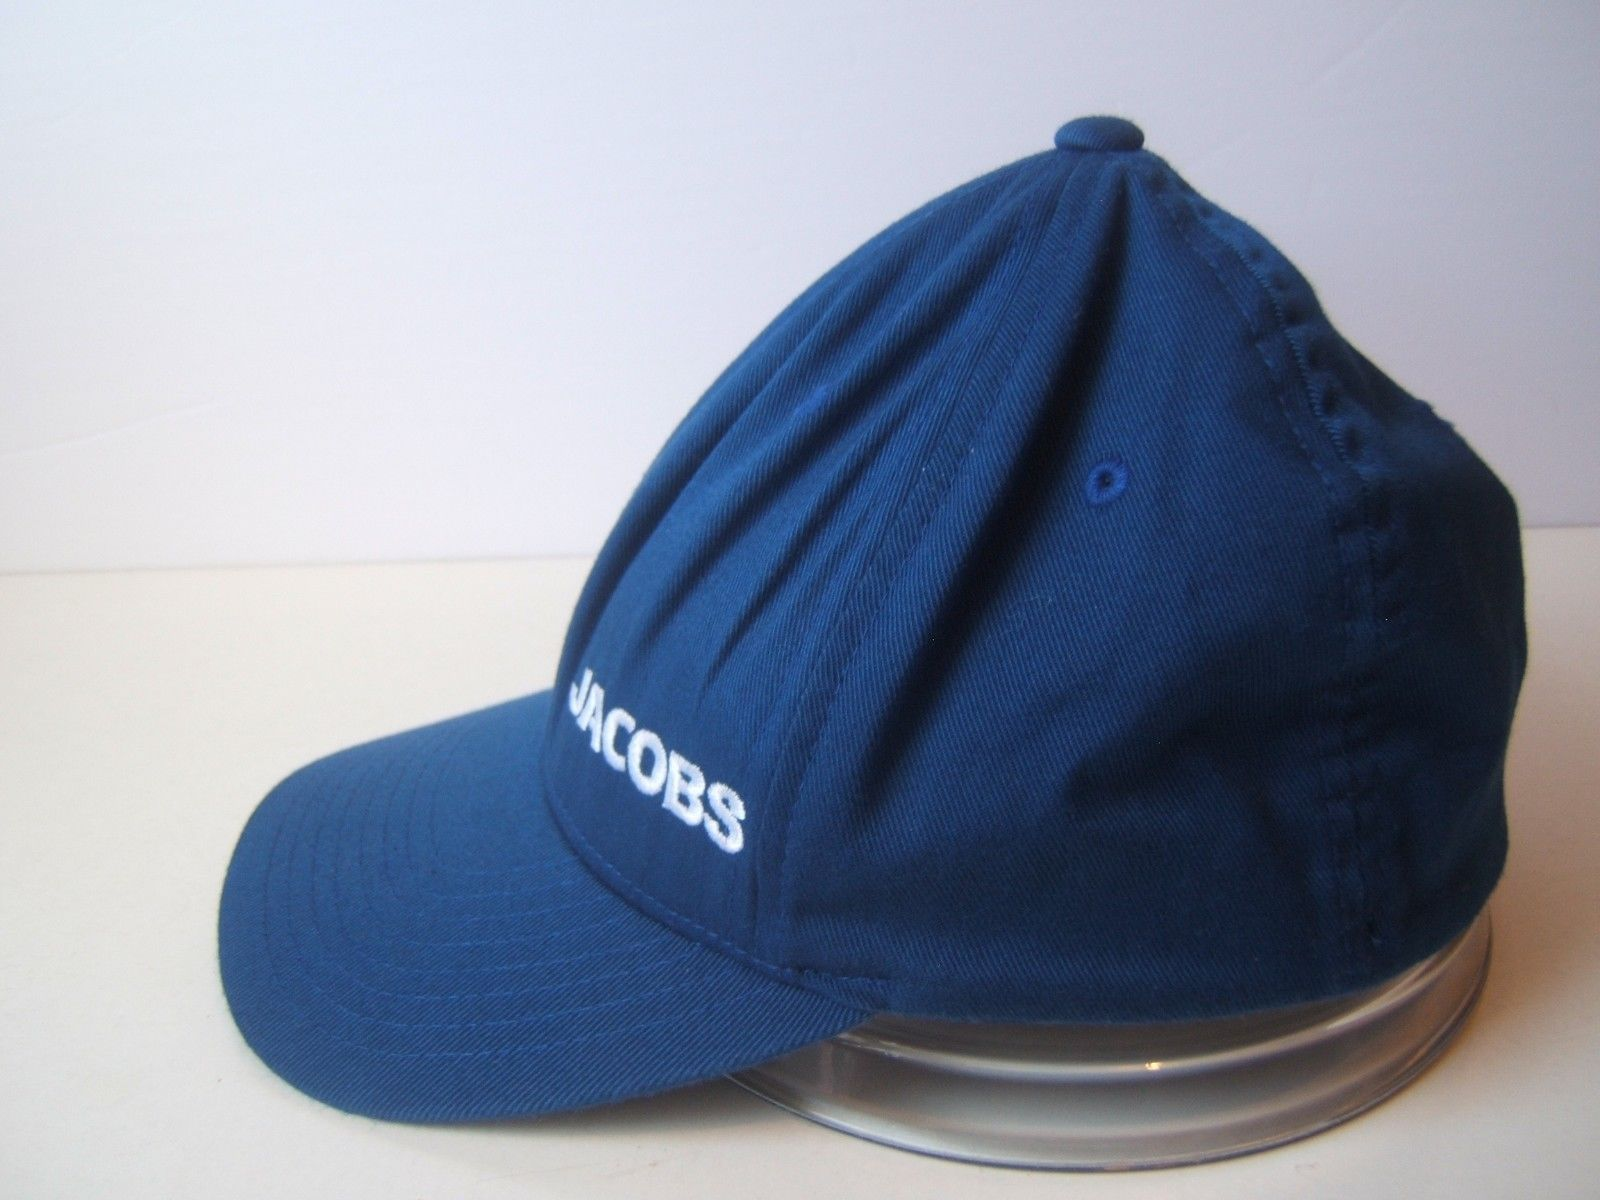 Jacobs Hat Blue S-M Stretch Fit Baseball Cap